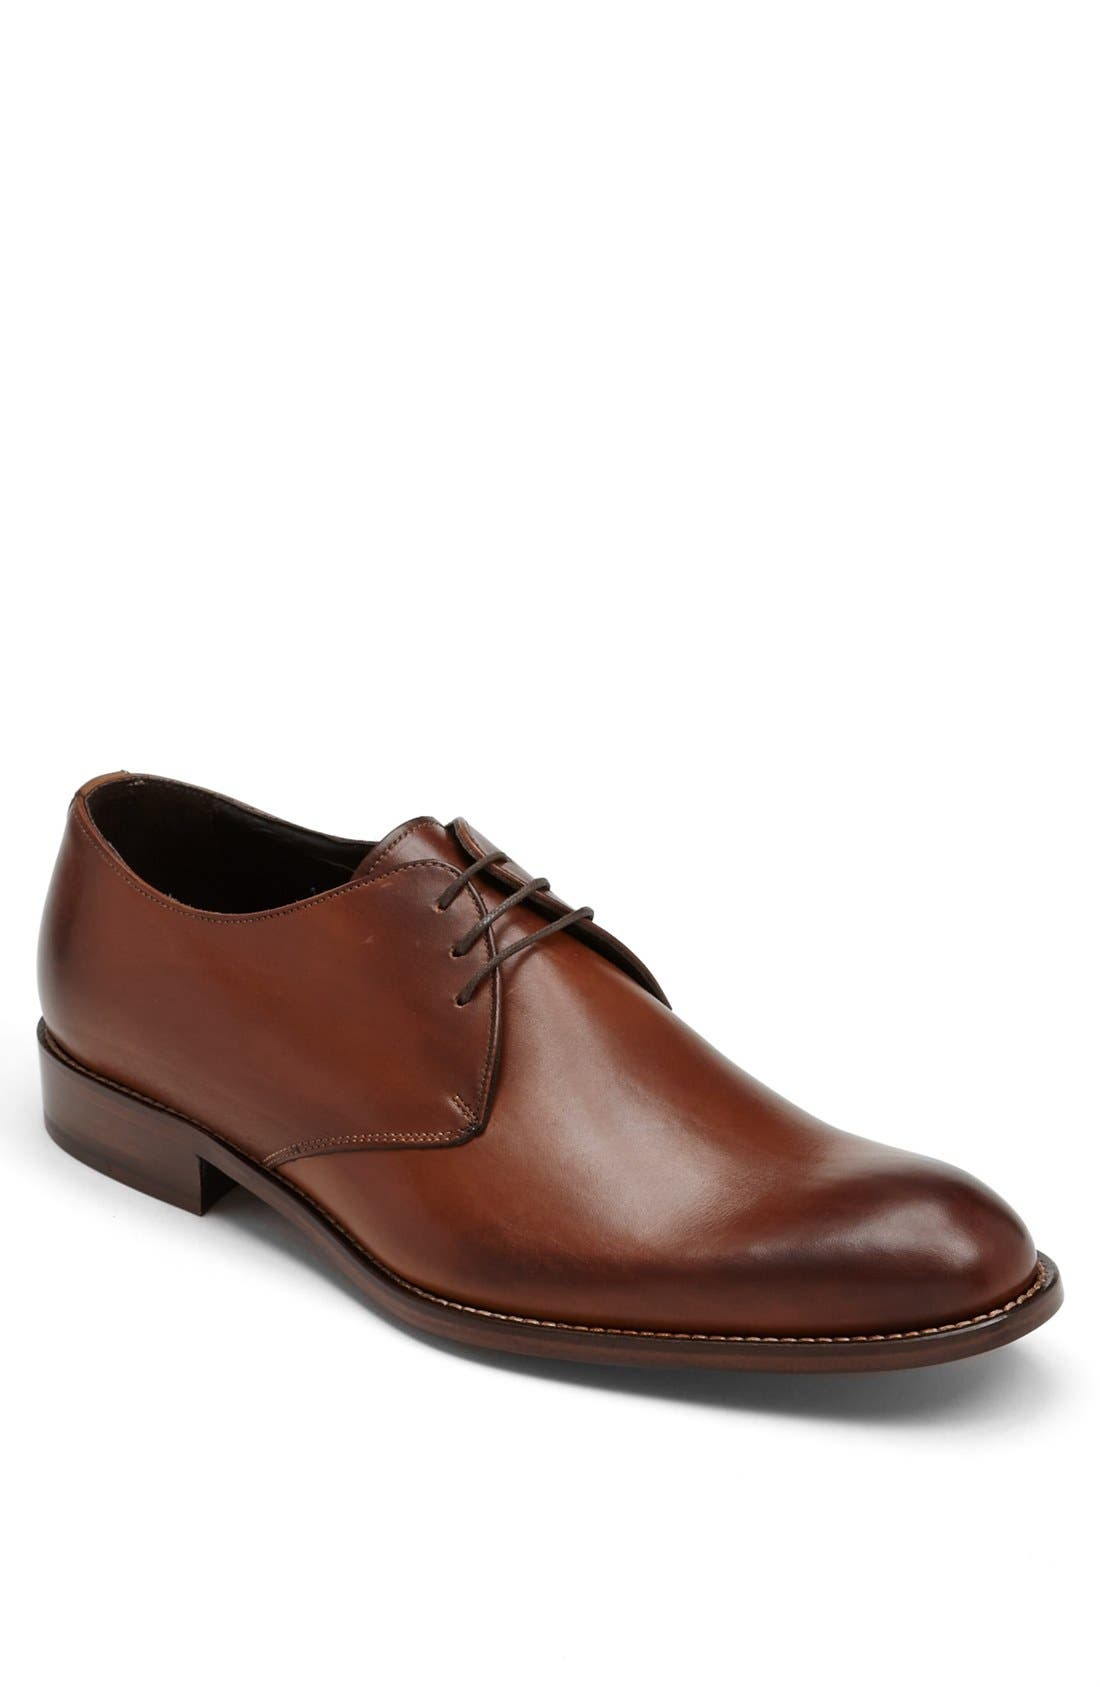 Main Image - To Boot New York 'Winston' Oxford